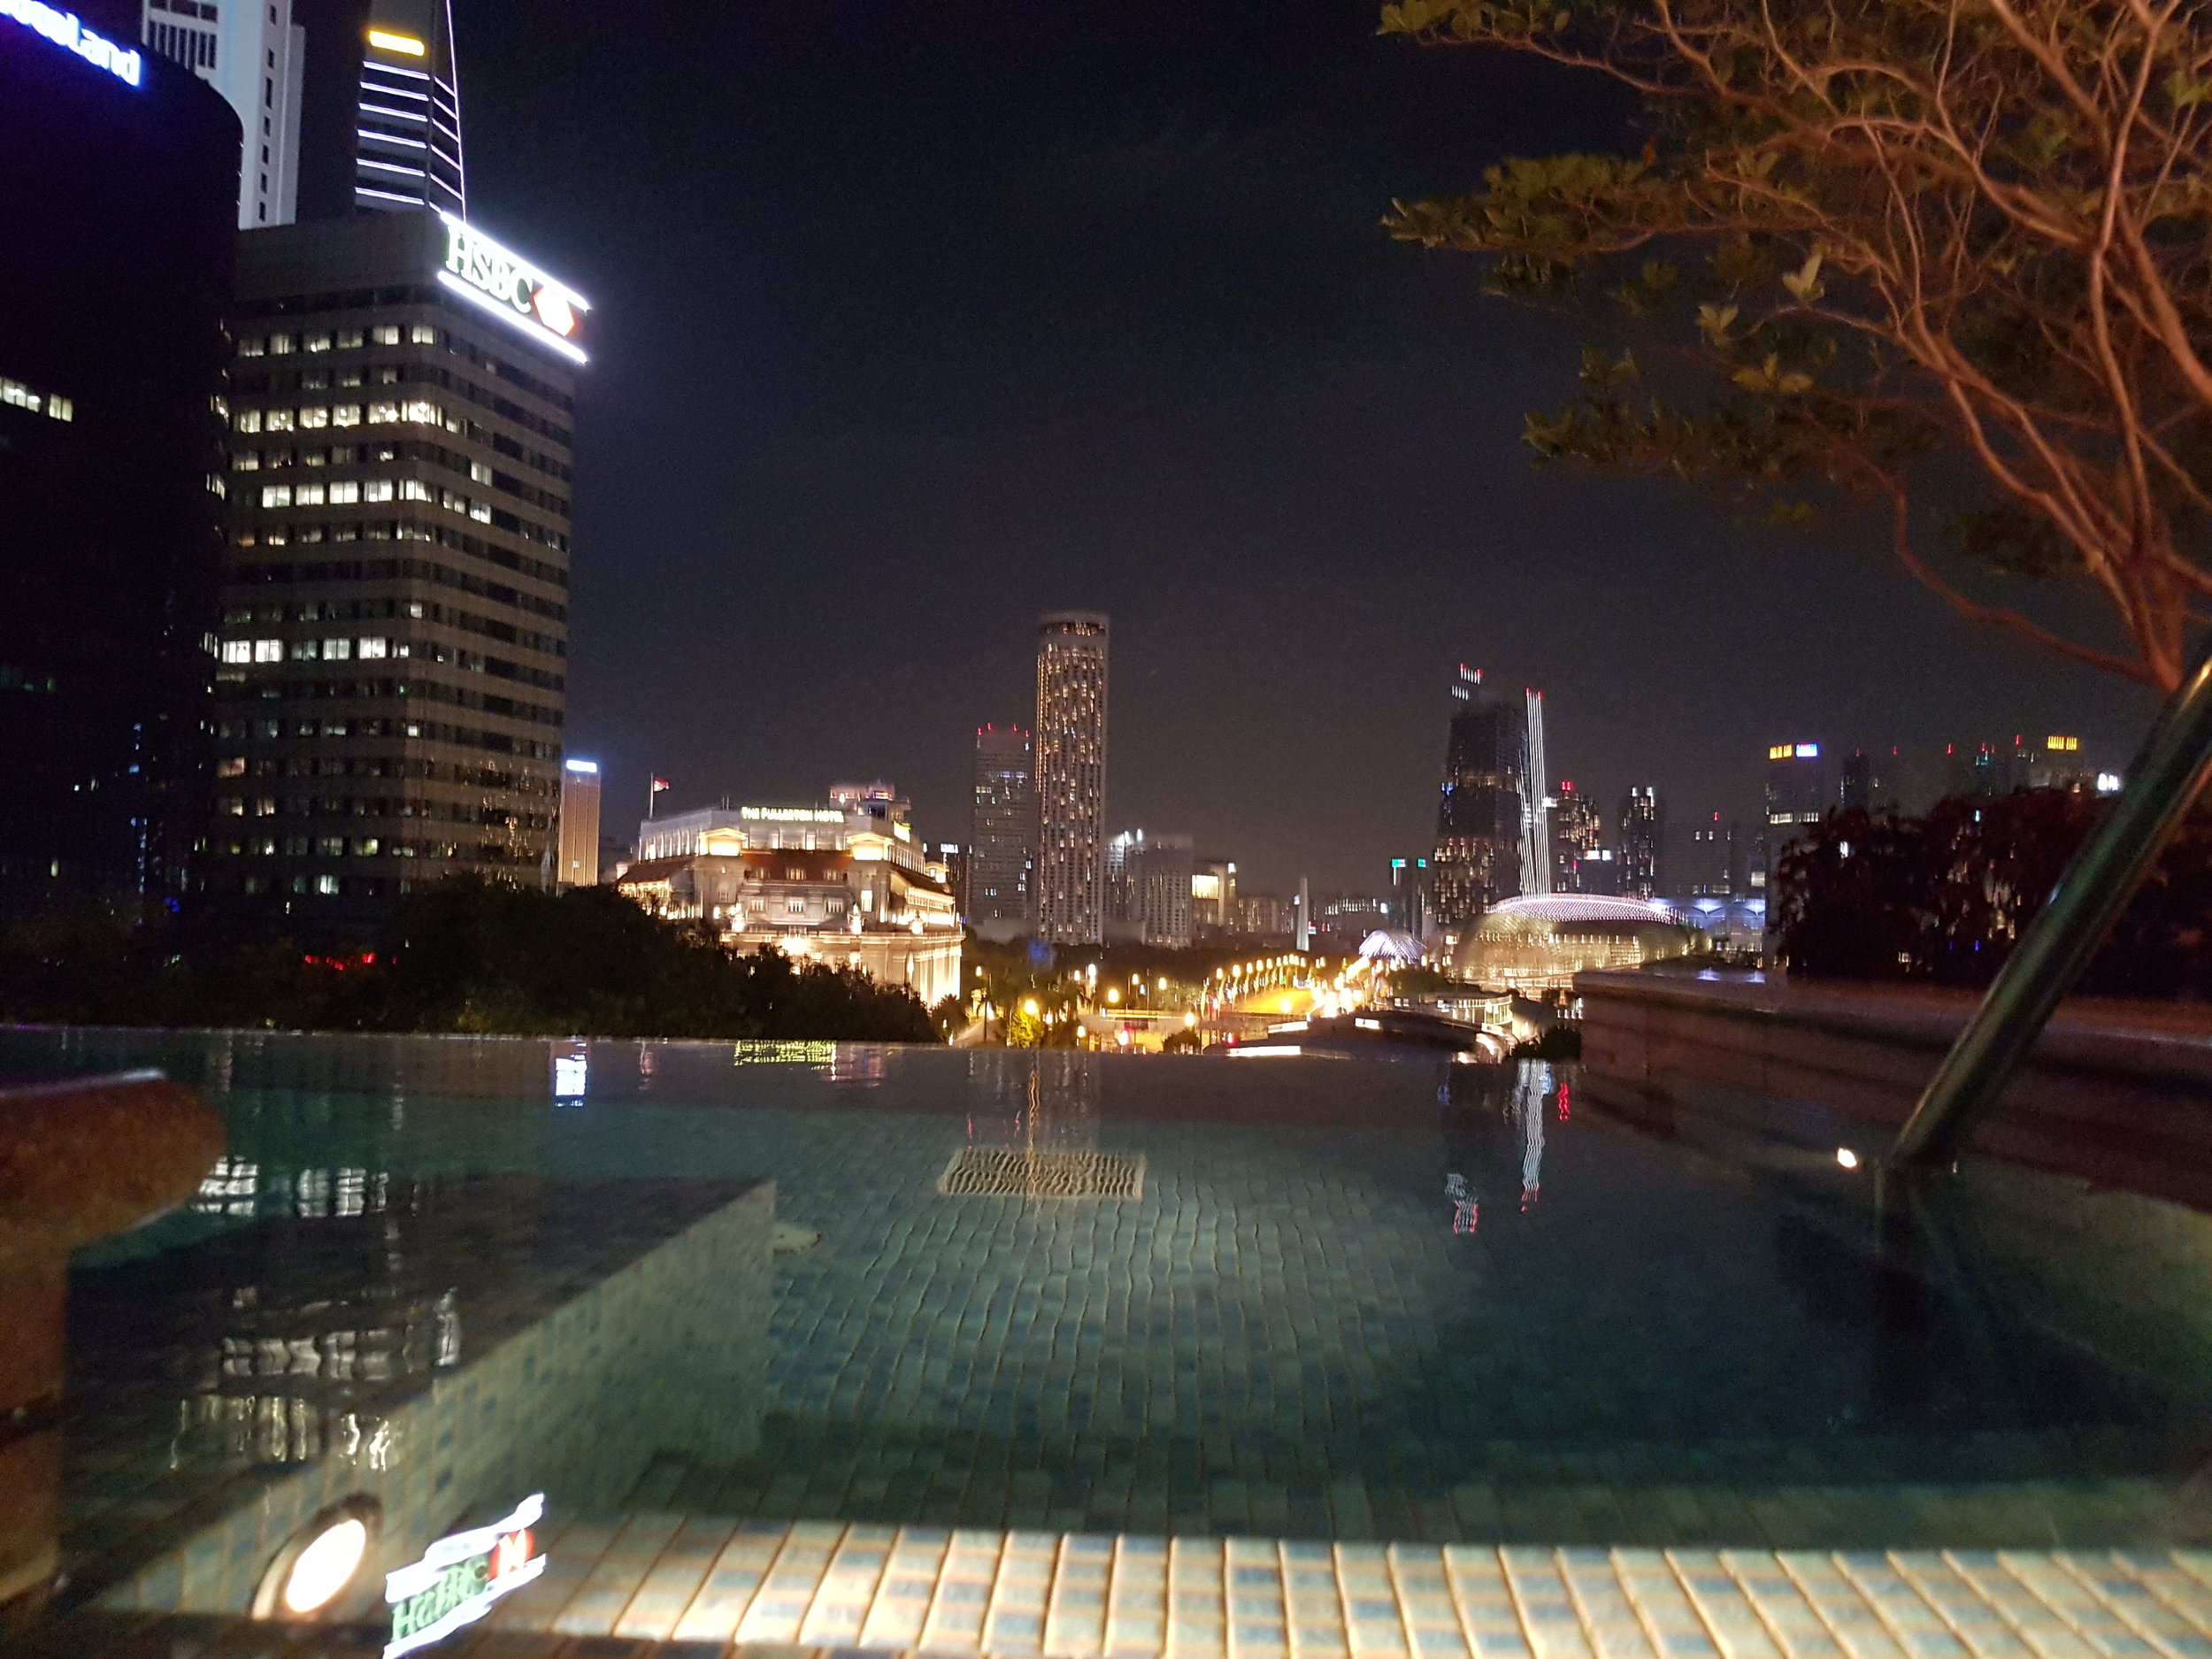 - Check out that view! The infinity pool at the Fullerton Bay Hotel